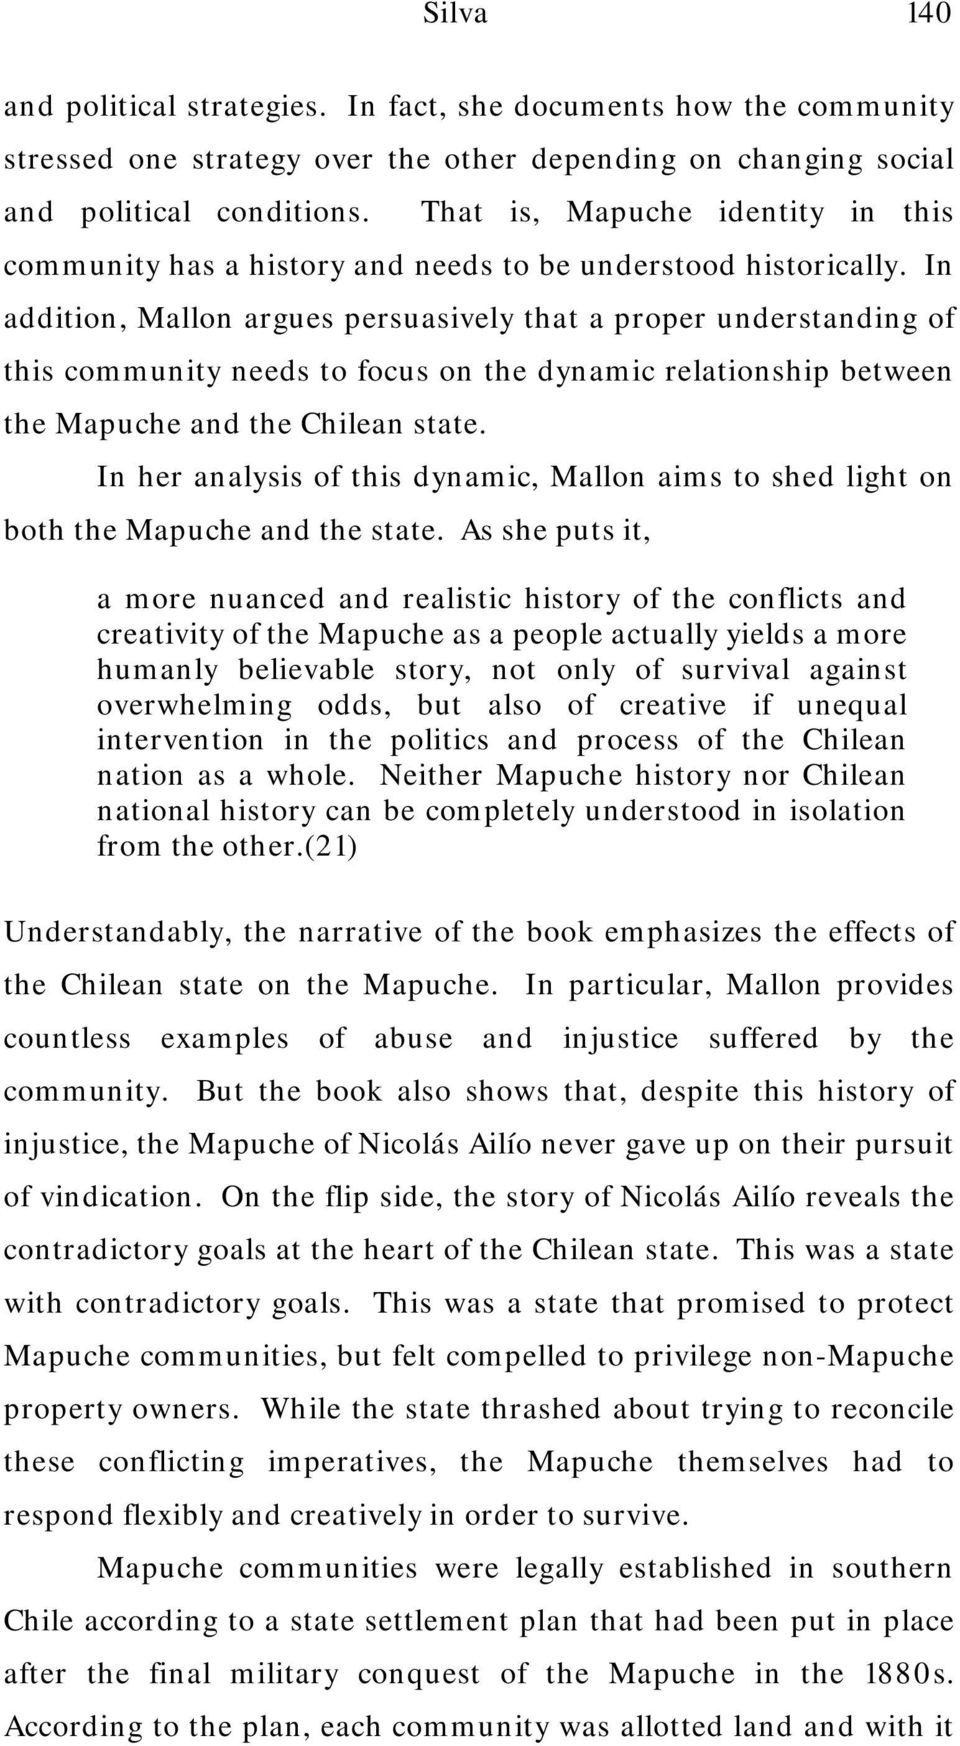 In addition, Mallon argues persuasively that a proper understanding of this community needs to focus on the dynamic relationship between the Mapuche and the Chilean state.